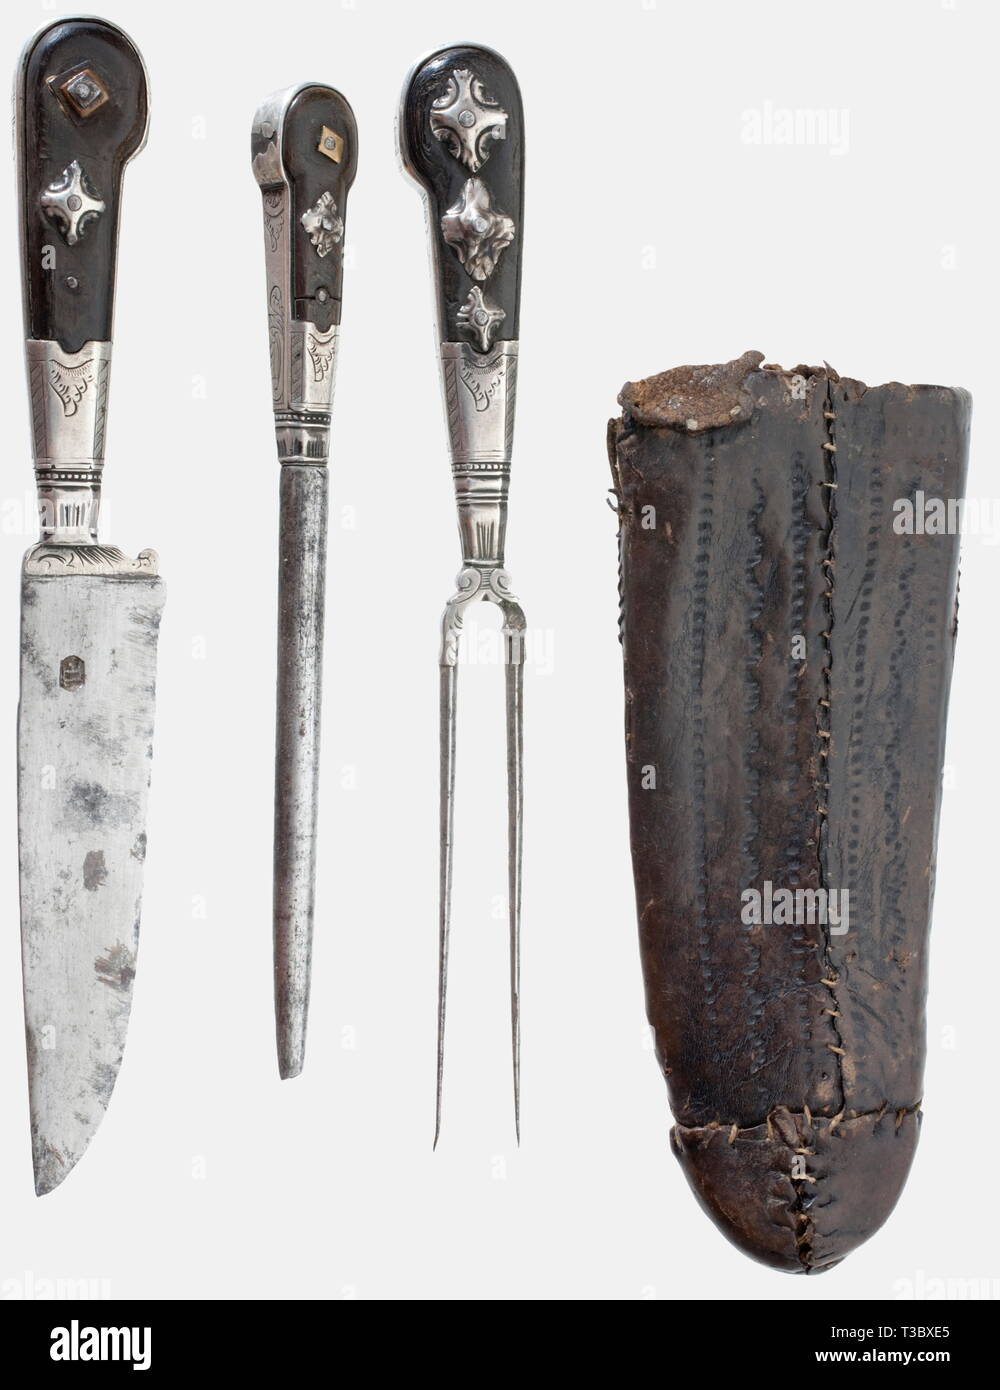 A silver-mounted waggoner's cutlery, Southern German, circa 1800 Matching cutlery consisting of knife, fork with two prongs and sharpening steel. Horn grips with silver mountings engraved with rocaille decoration (some studs are missing). Punched leather sheath, on the side pocketed toothpick made from a fawn's hoof. Length circa 23 cm. historic, historical, 19th century, dagger, daggers, thrusting, thrustings, baton, weapon, arms, weapons, arms, fighting device, object, objects, stills, clipping, cut out, cut-out, cut-outs, Additional-Rights-Clearance-Info-Not-Available - Stock Image